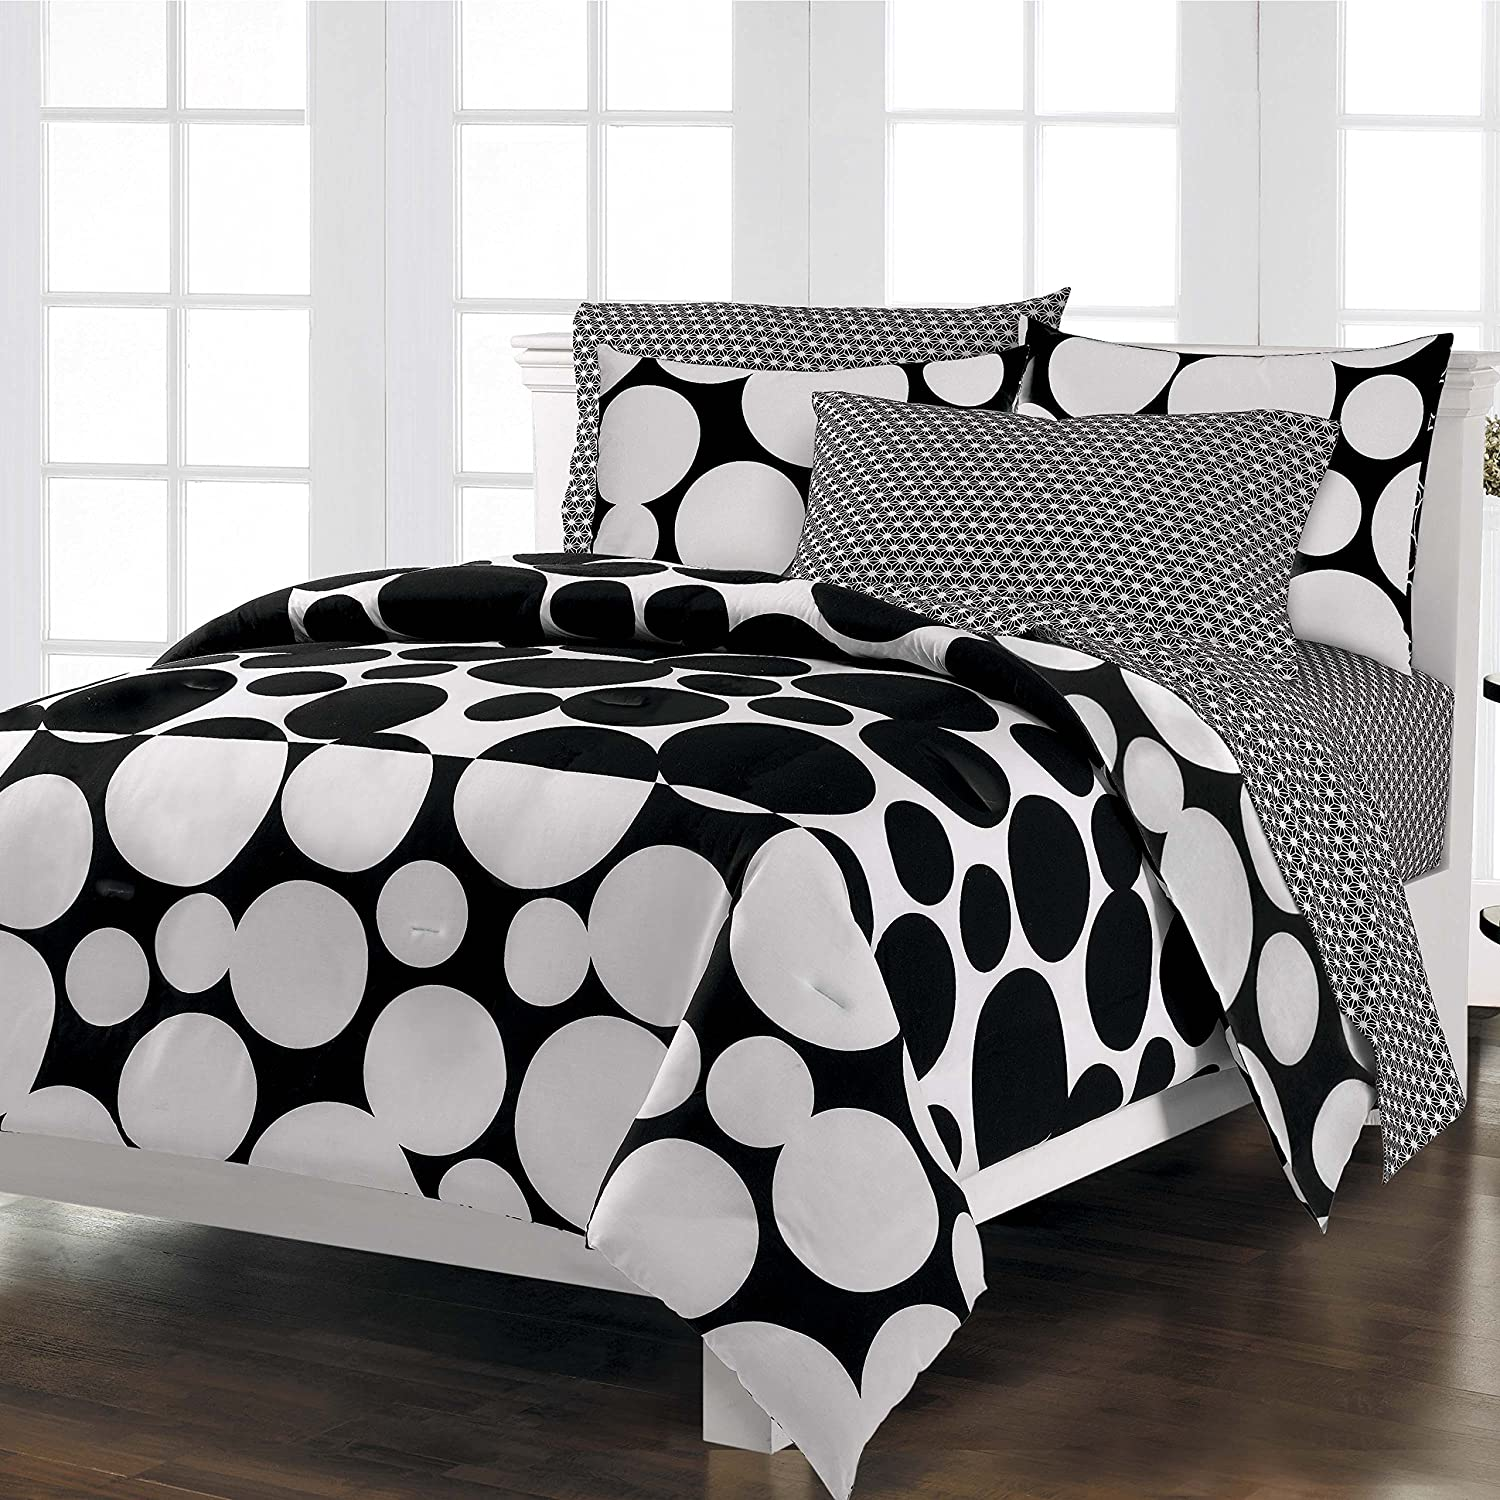 Bed sheet set black and white - Amazon Com Loft Style Spot The Dot Modern Bedding Comforter Set Black Twin Home Kitchen